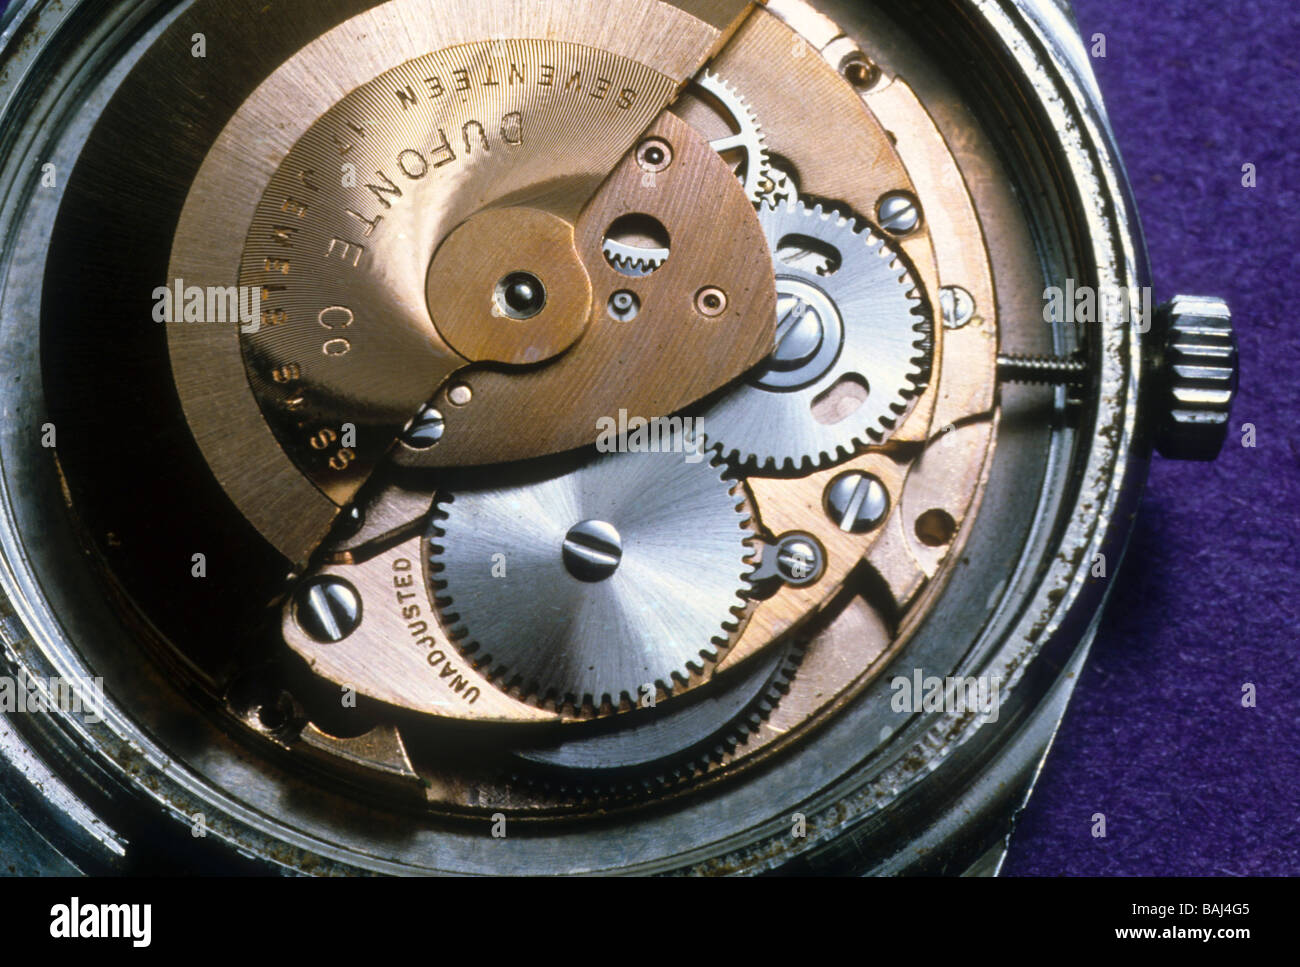 clock watch time timepiece precision Swiss movement gear escapement - Stock Image